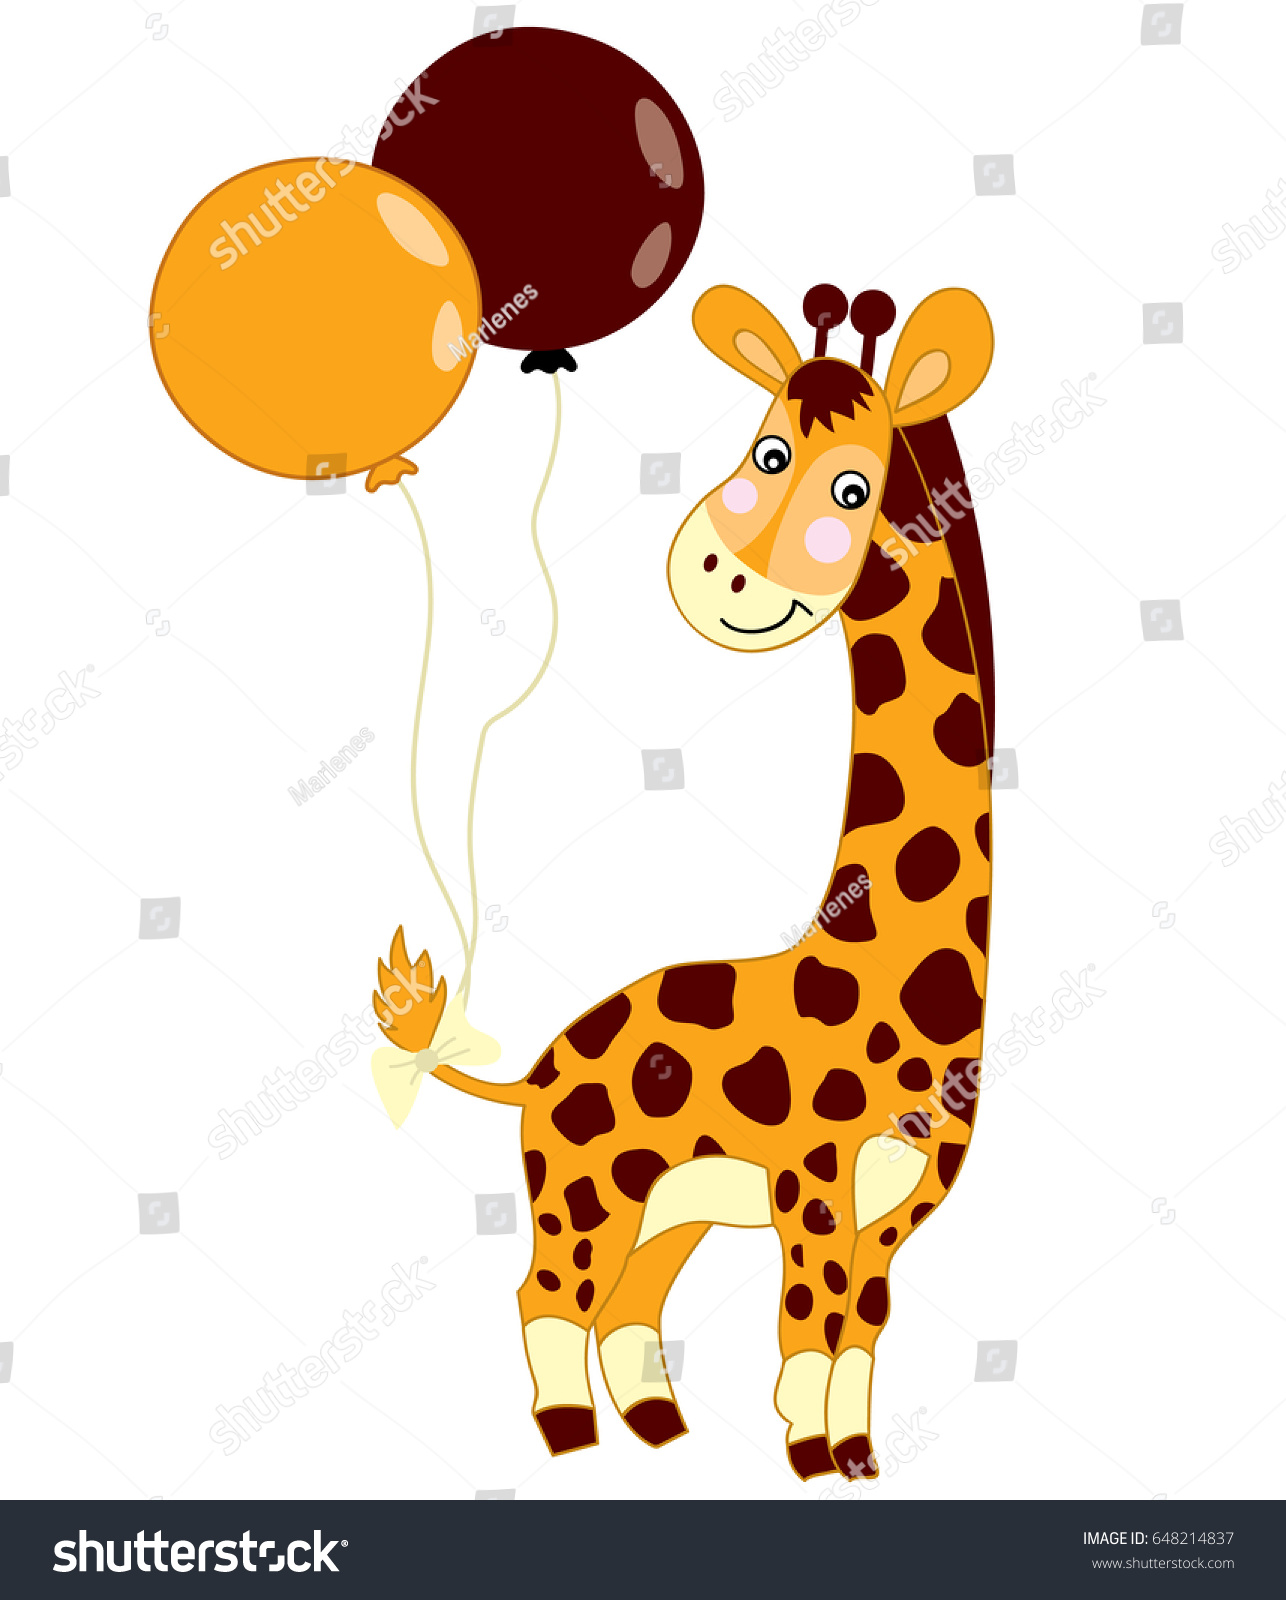 hight resolution of vector cute baby giraffe with balloons on white background giraffe clipart giraffe vector illustration